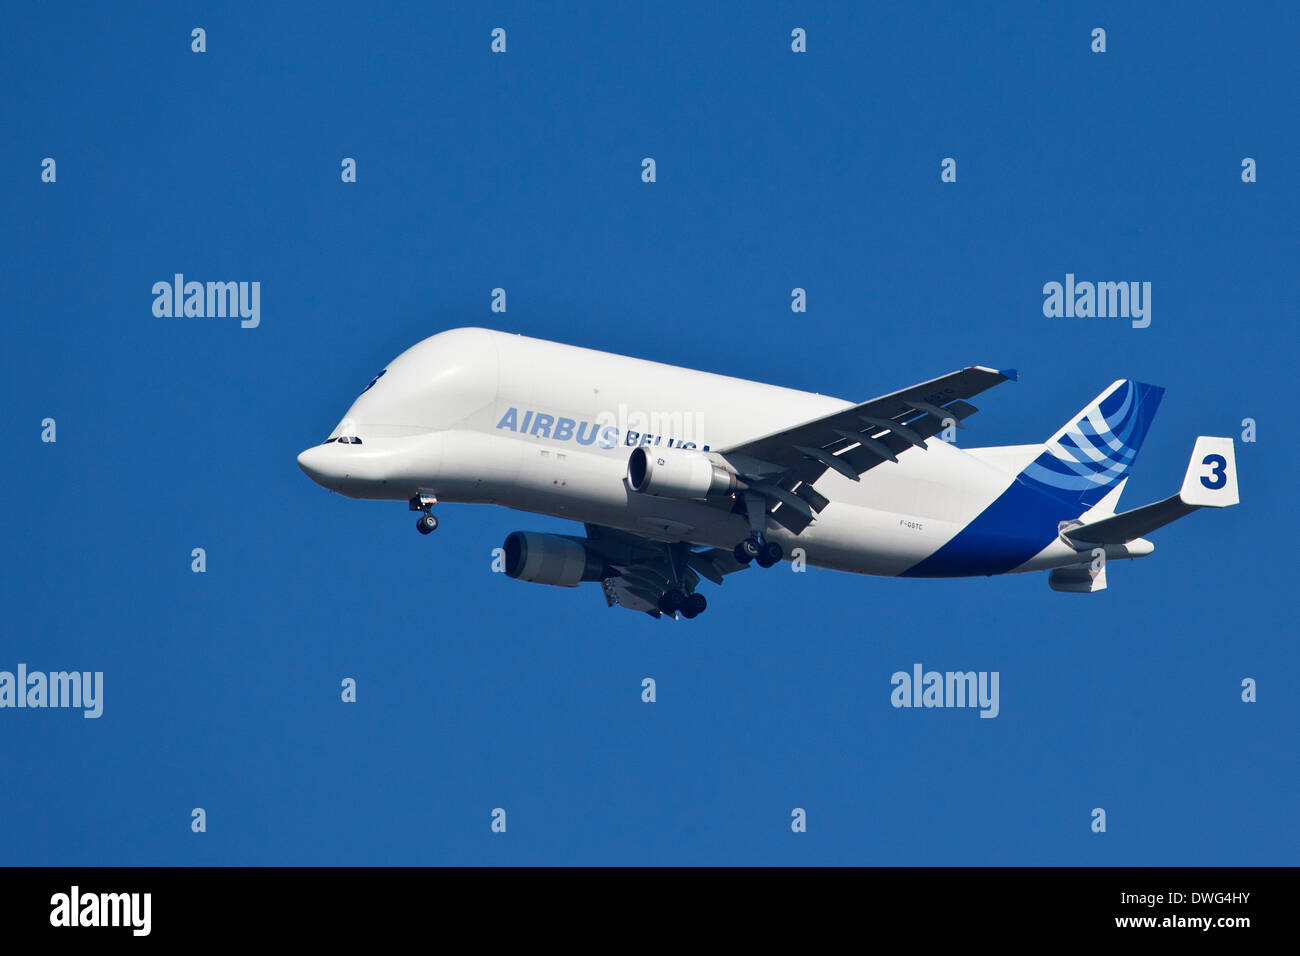 An Airbus Industries Airbus A300-600T super transporter aircraft - Stock Image